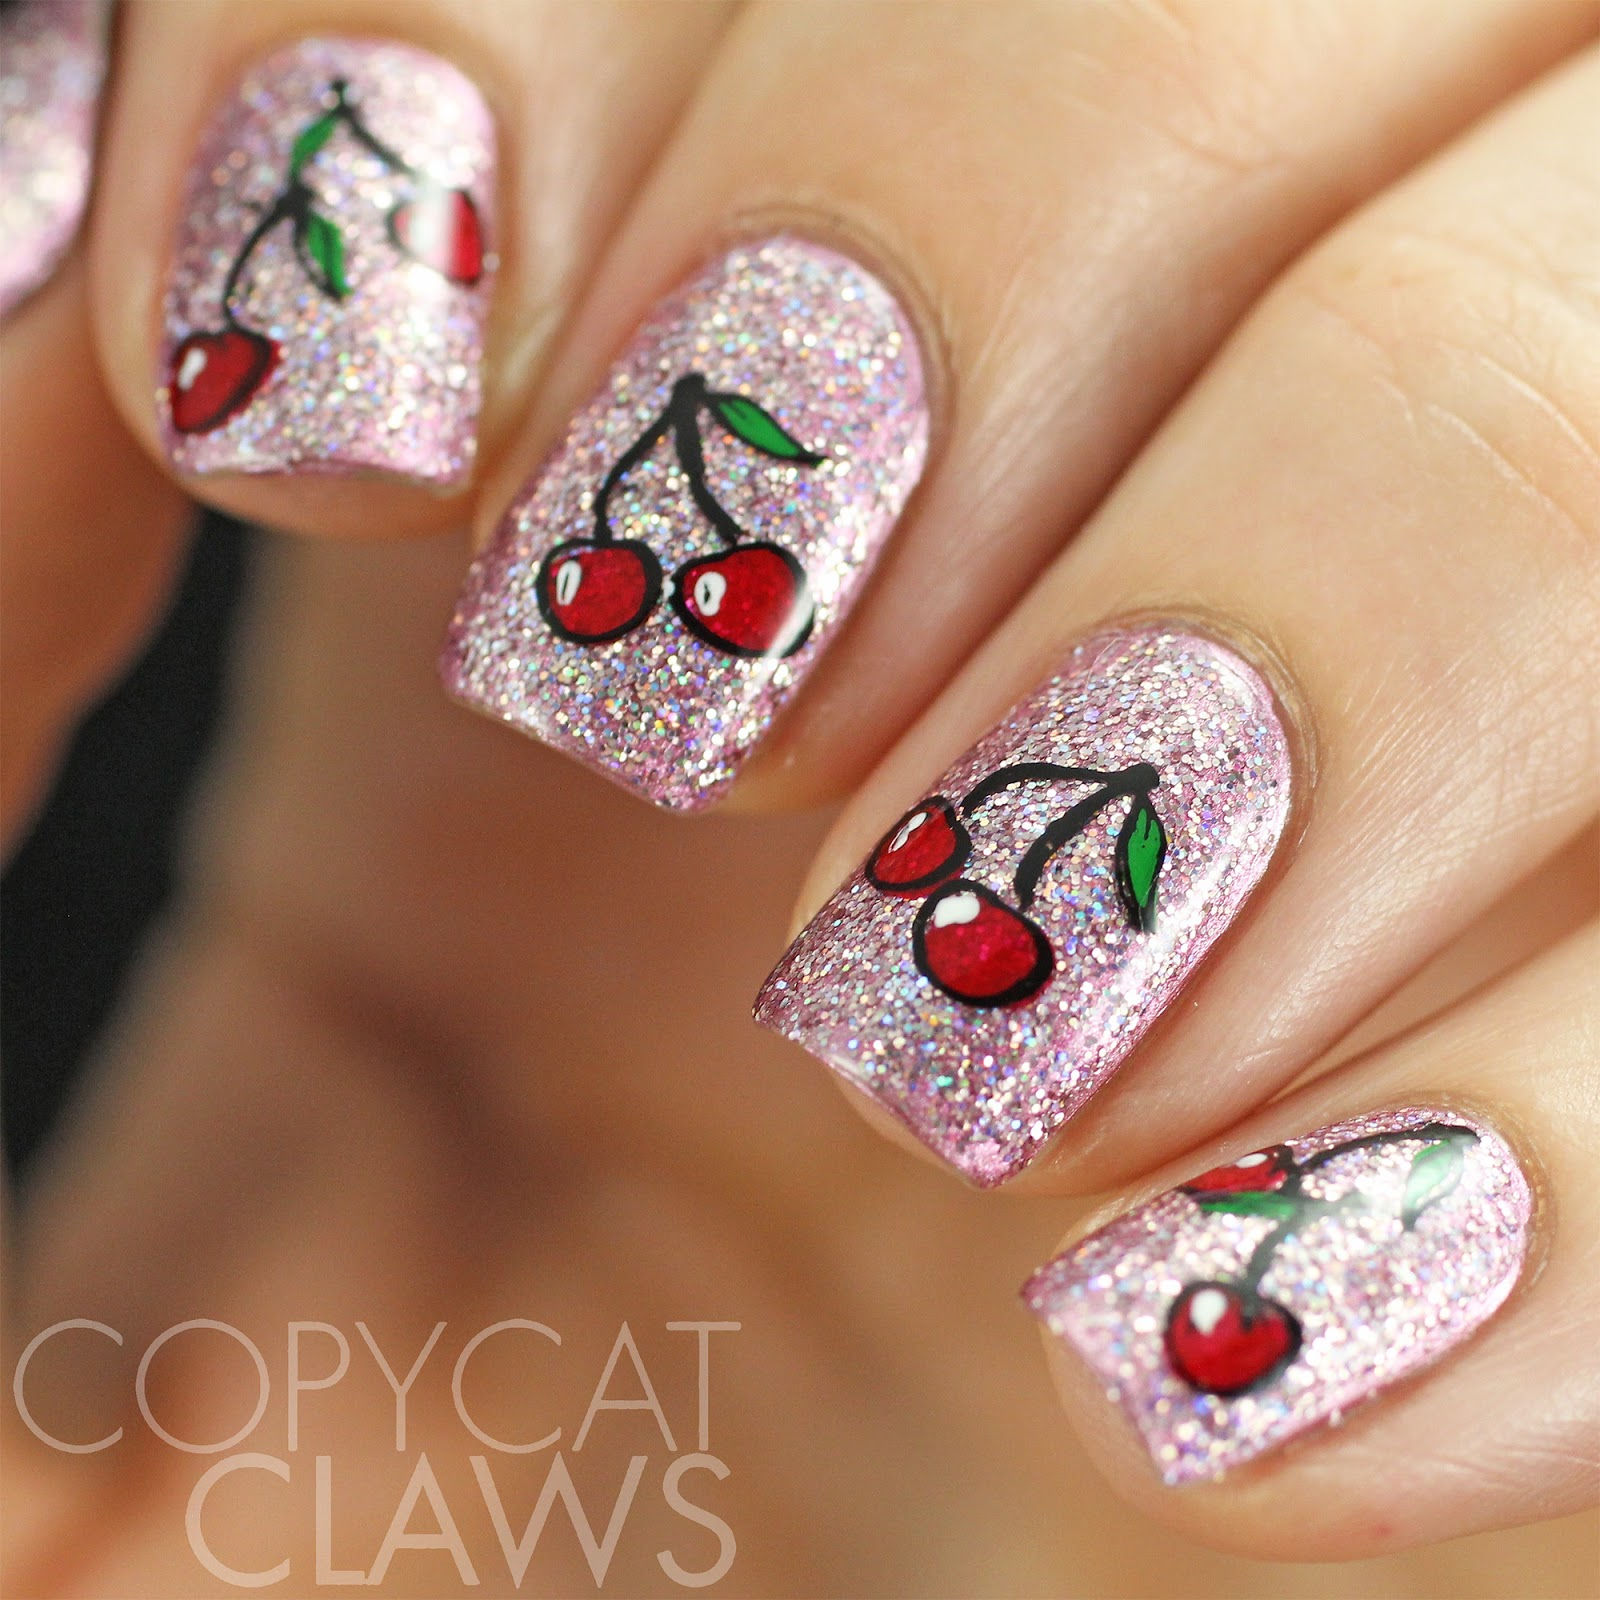 Copycat claws hpb presents cherry nail art for the stamping i used the clear jelly stamper cjs lc 01 plate and their clear stamper previously reviewed here these cherries are my favorite images on prinsesfo Gallery